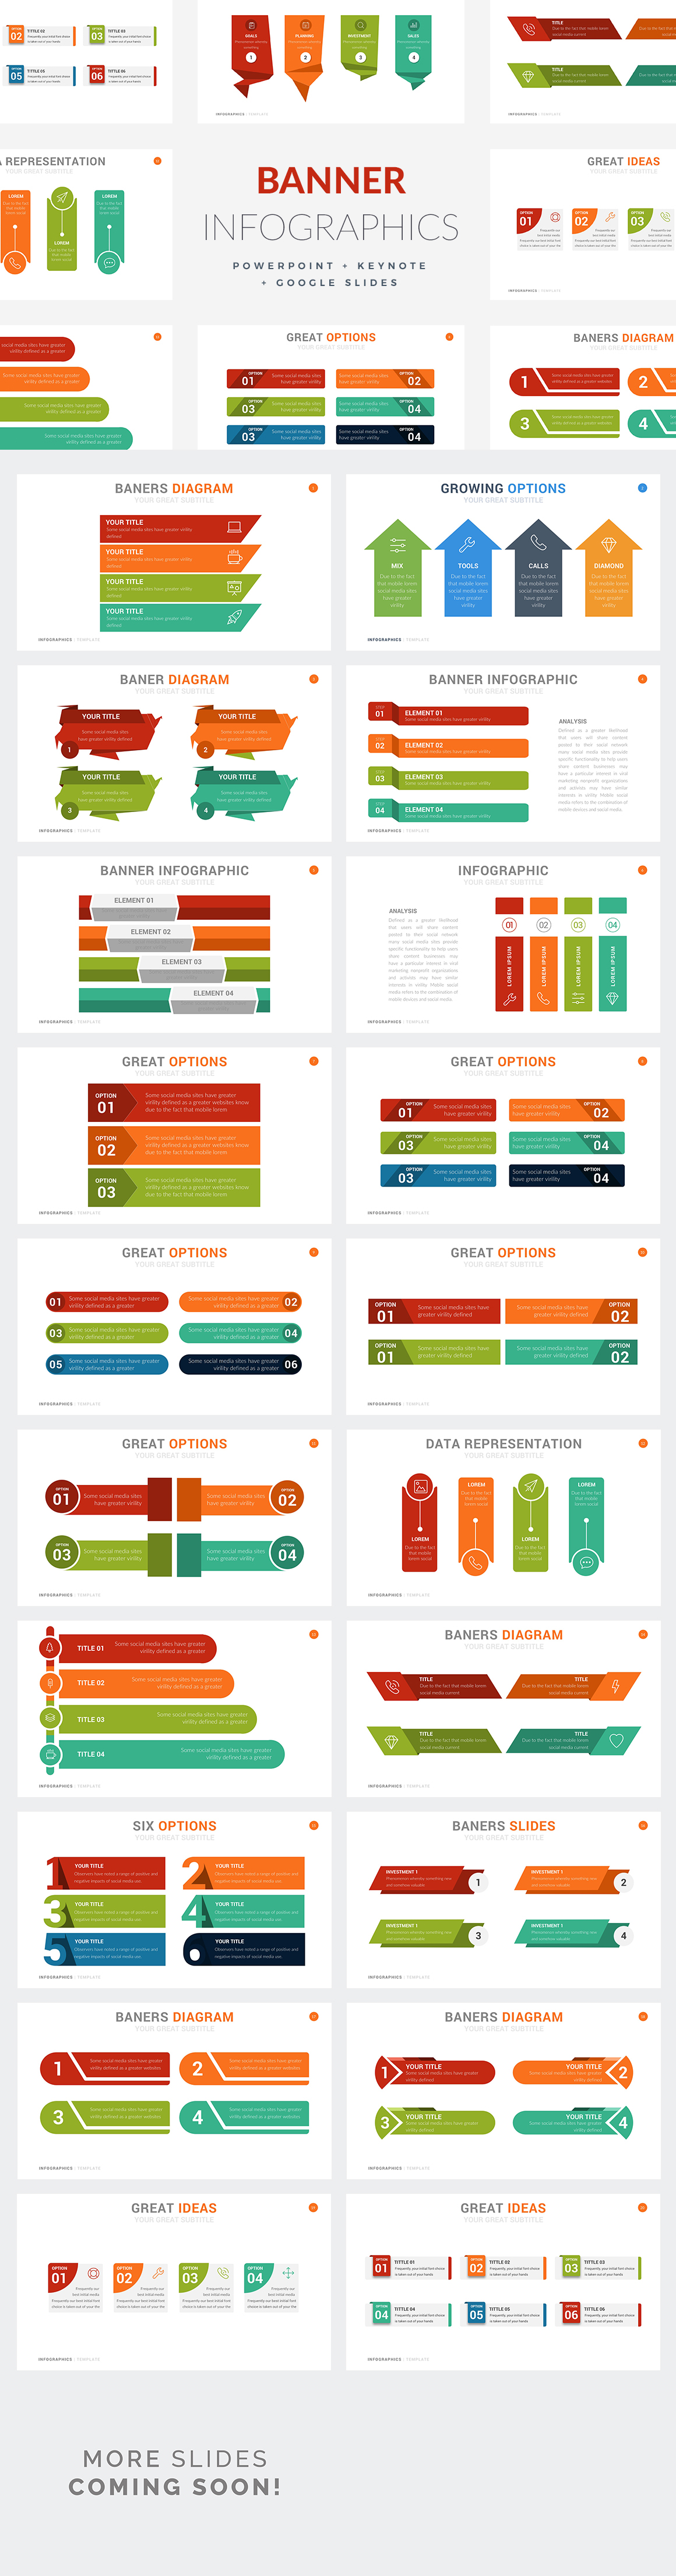 Banner Infographic Templates - PowerPoint Templates - Keynote Themes - Google Slides